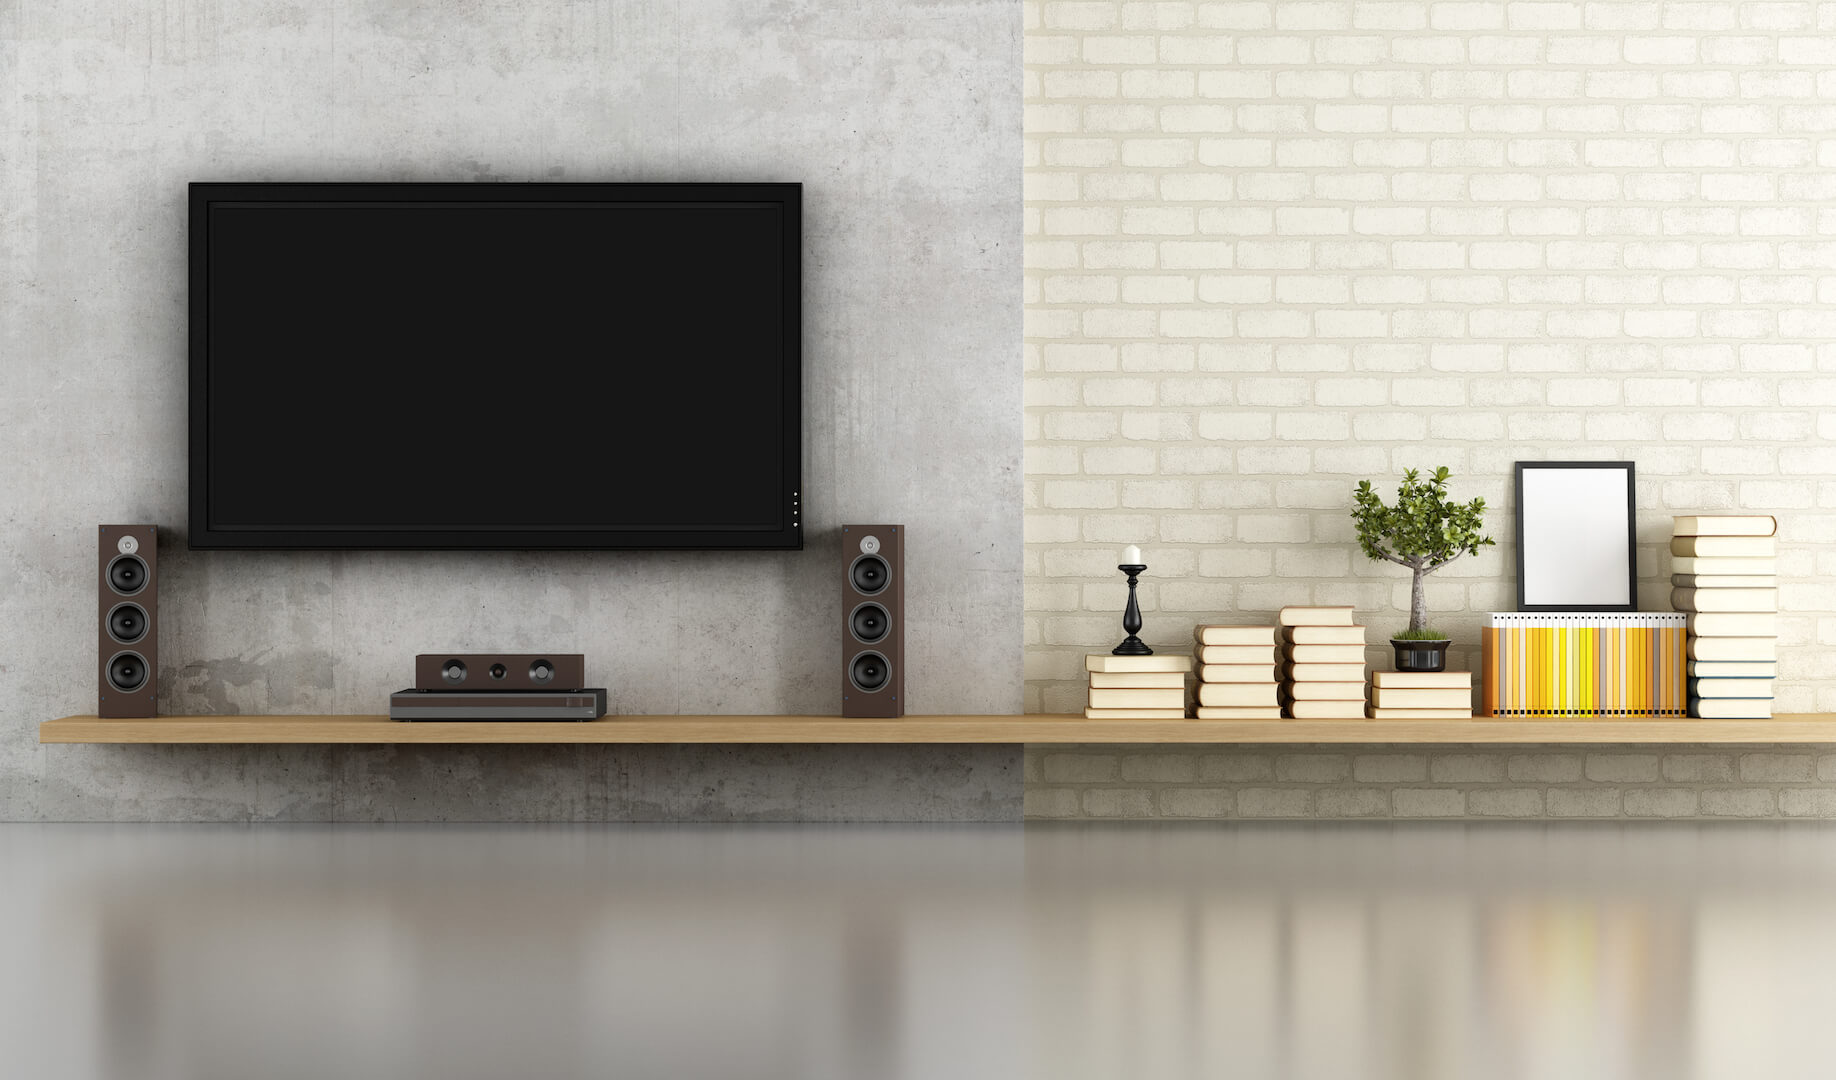 living room without furniture with shelf tv and concrete panel - rendering